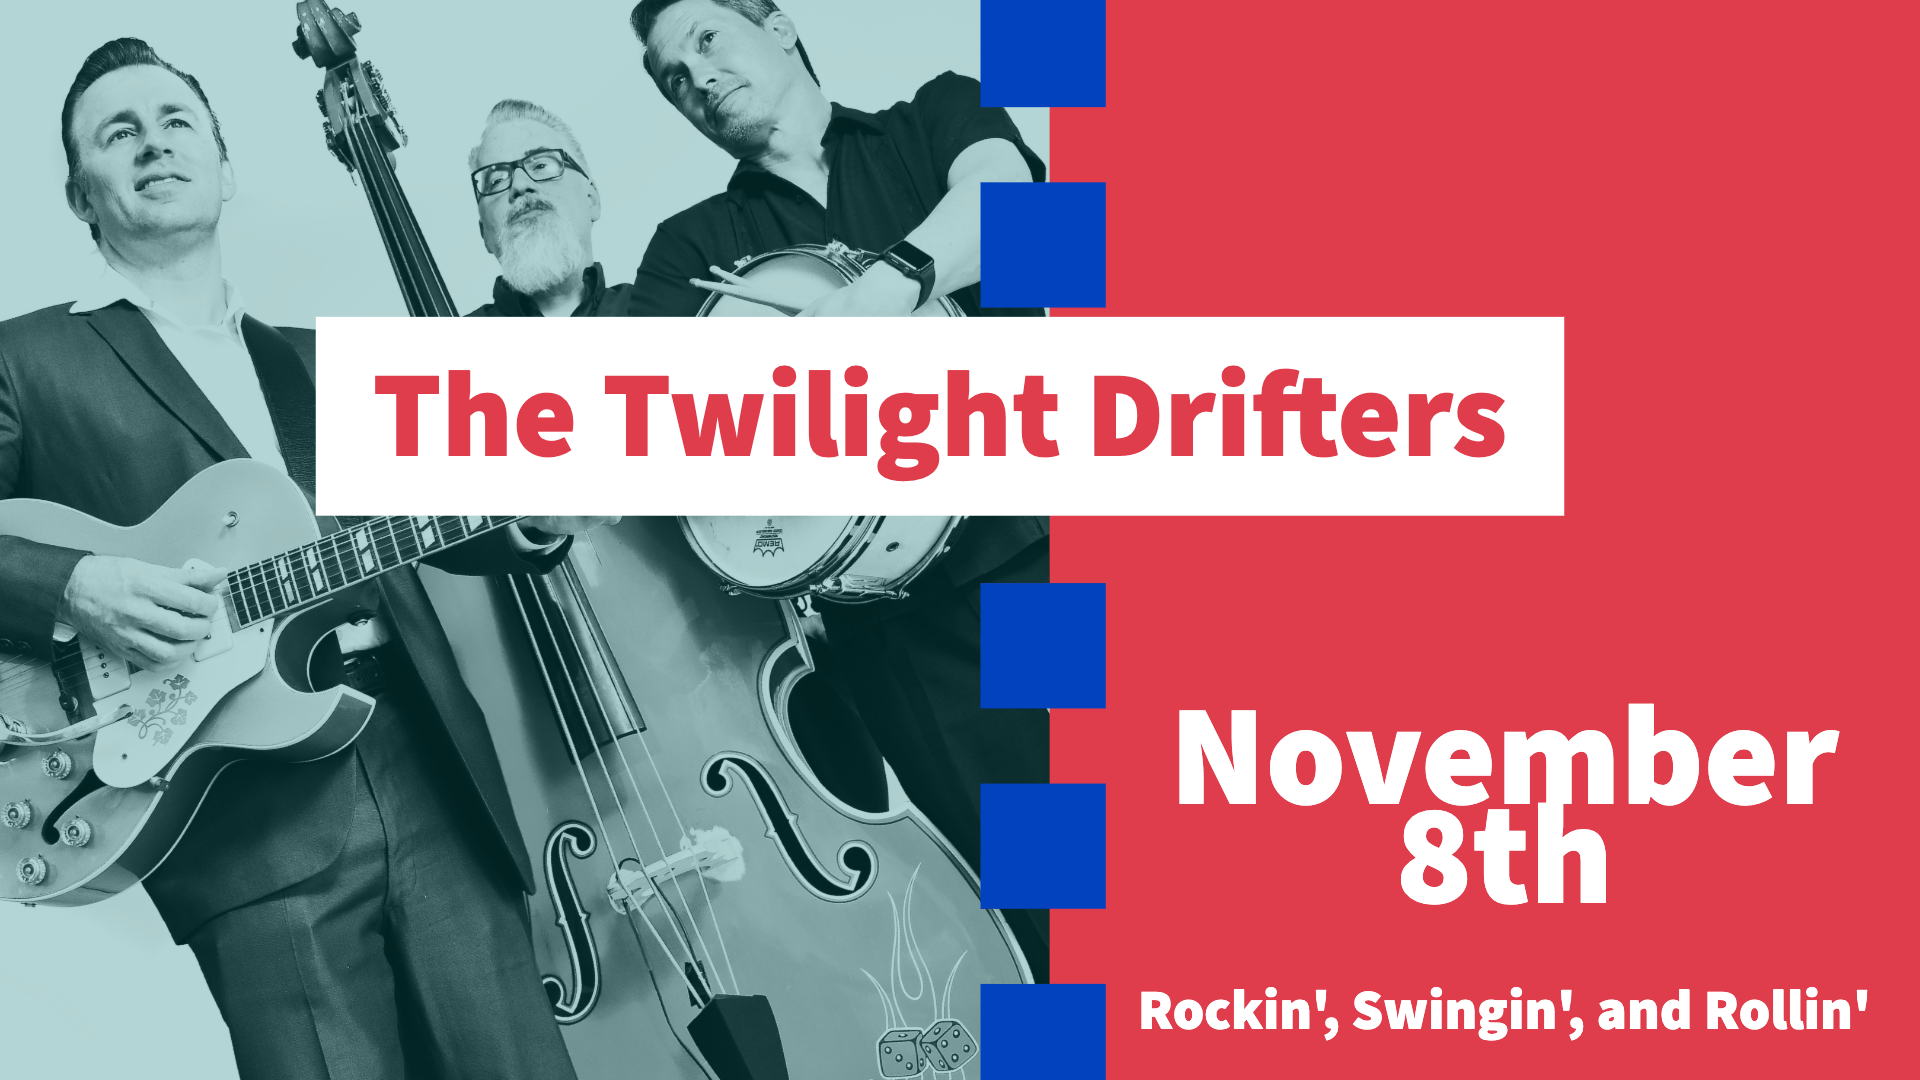 The Twilight Drifters make their Midtown Stomp debut on November 8th, 2019. Don't miss out on the fun